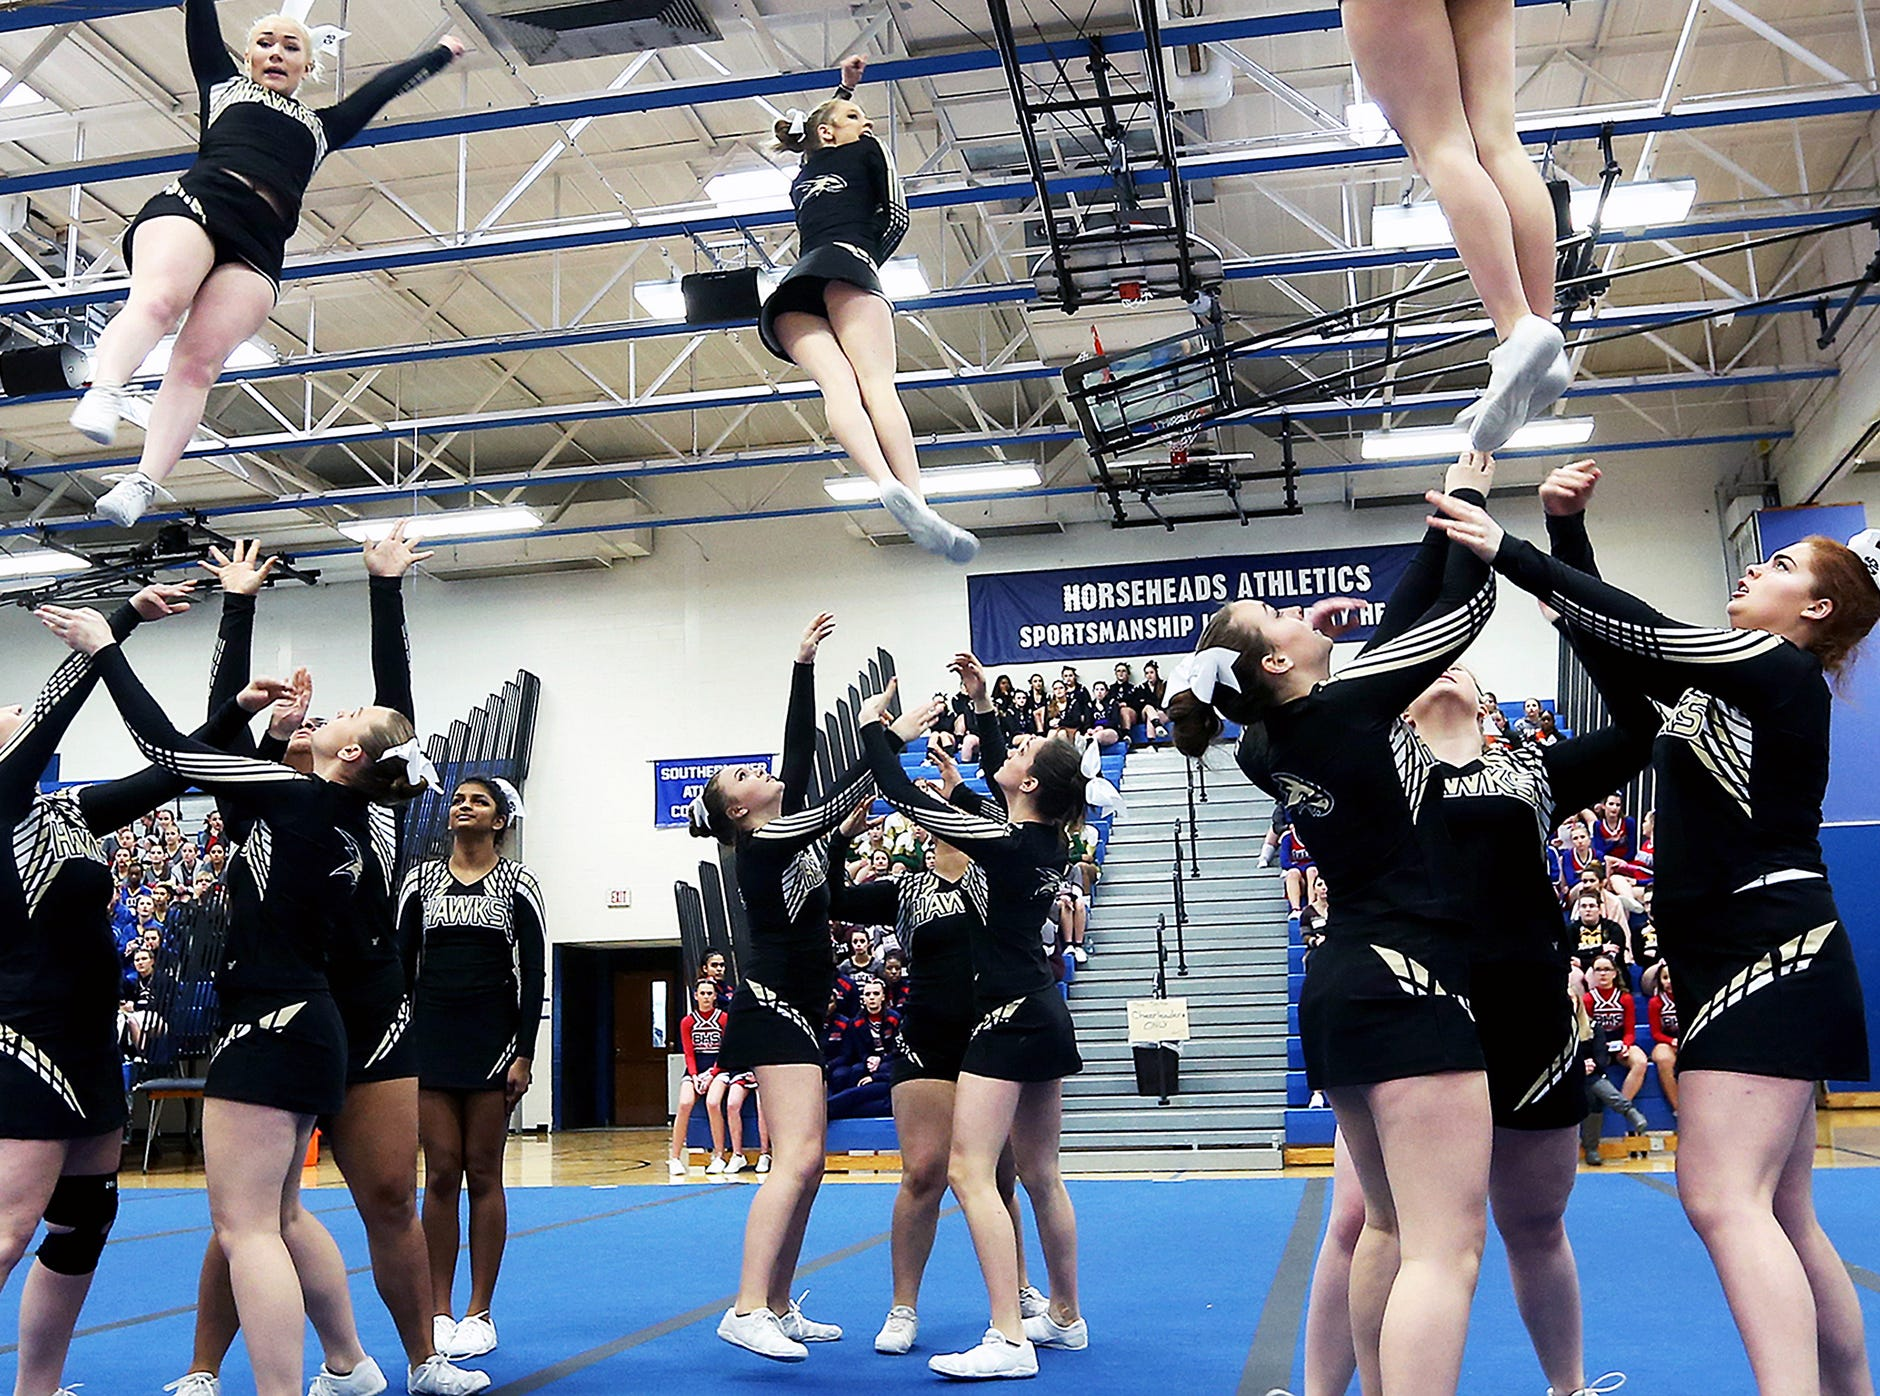 Johnson City cheerleaders, Winter 2018 STAC Cheerleading Competition, February 17, 2018, at Horseheads Middle School.